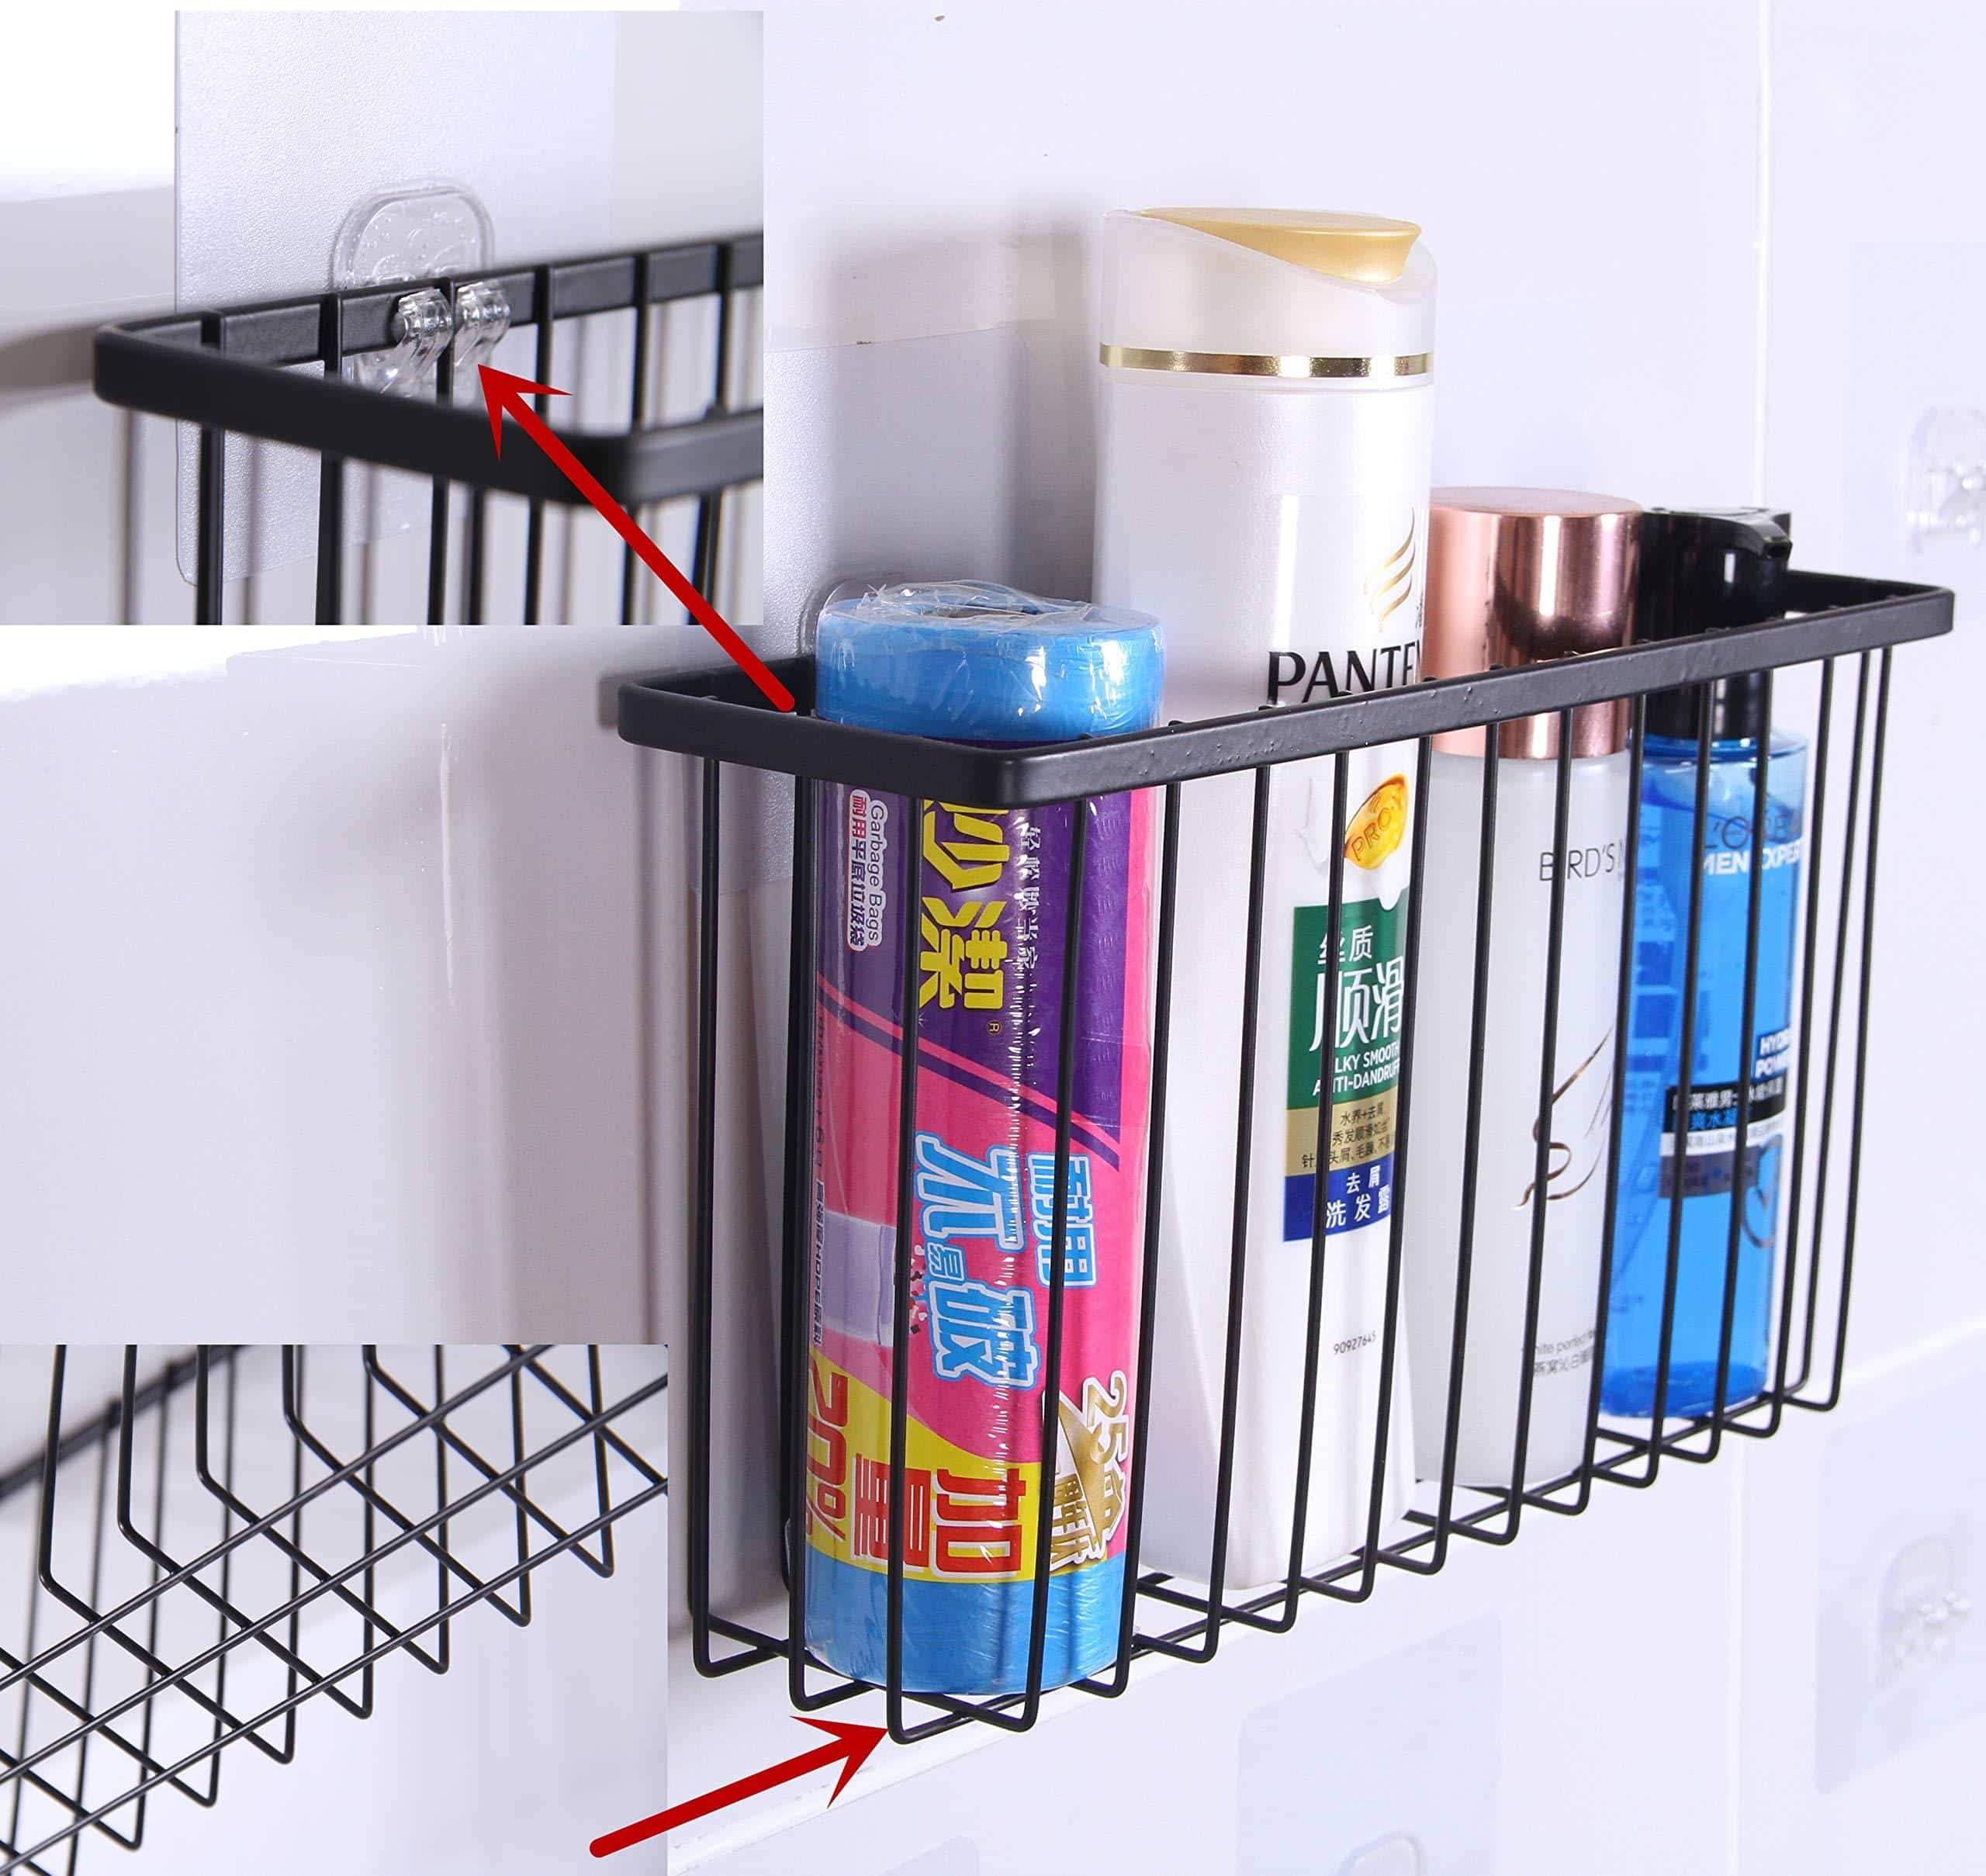 Products over the cabinet door organizer holder einfagood over the cabinet basket with adhesive pads and 2 adhesive hooks black coat 2 pack 1 door basket